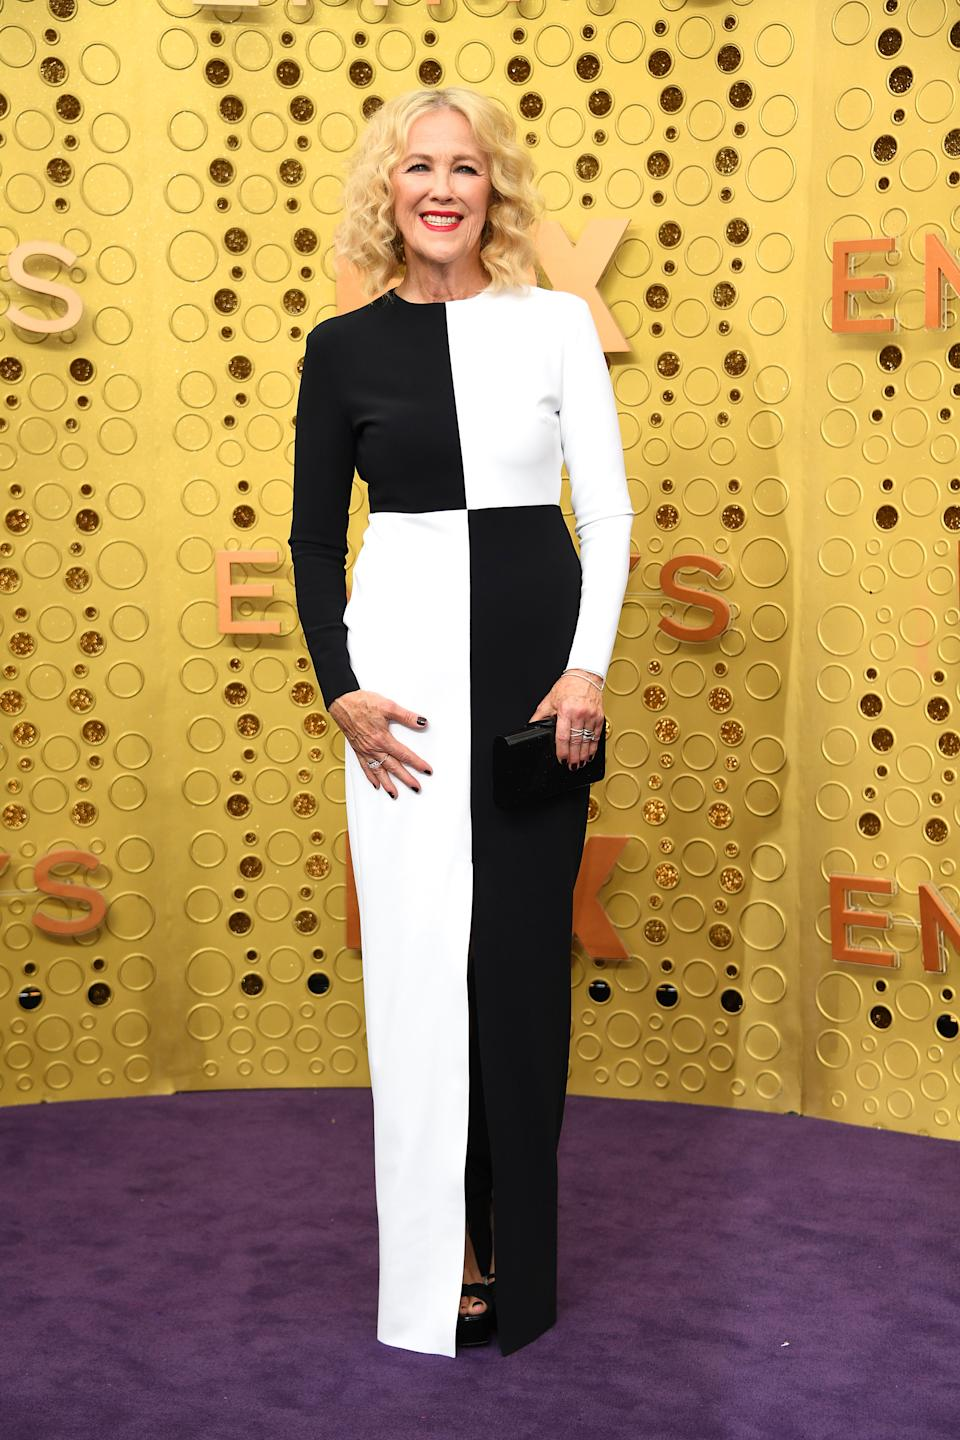 """The """"Schitt's Creek"""" star and nominee for """"Outstanding Lead Actress ina . Comedy Series"""" wore a monochrome look by Canadian designer Greta Constantine."""